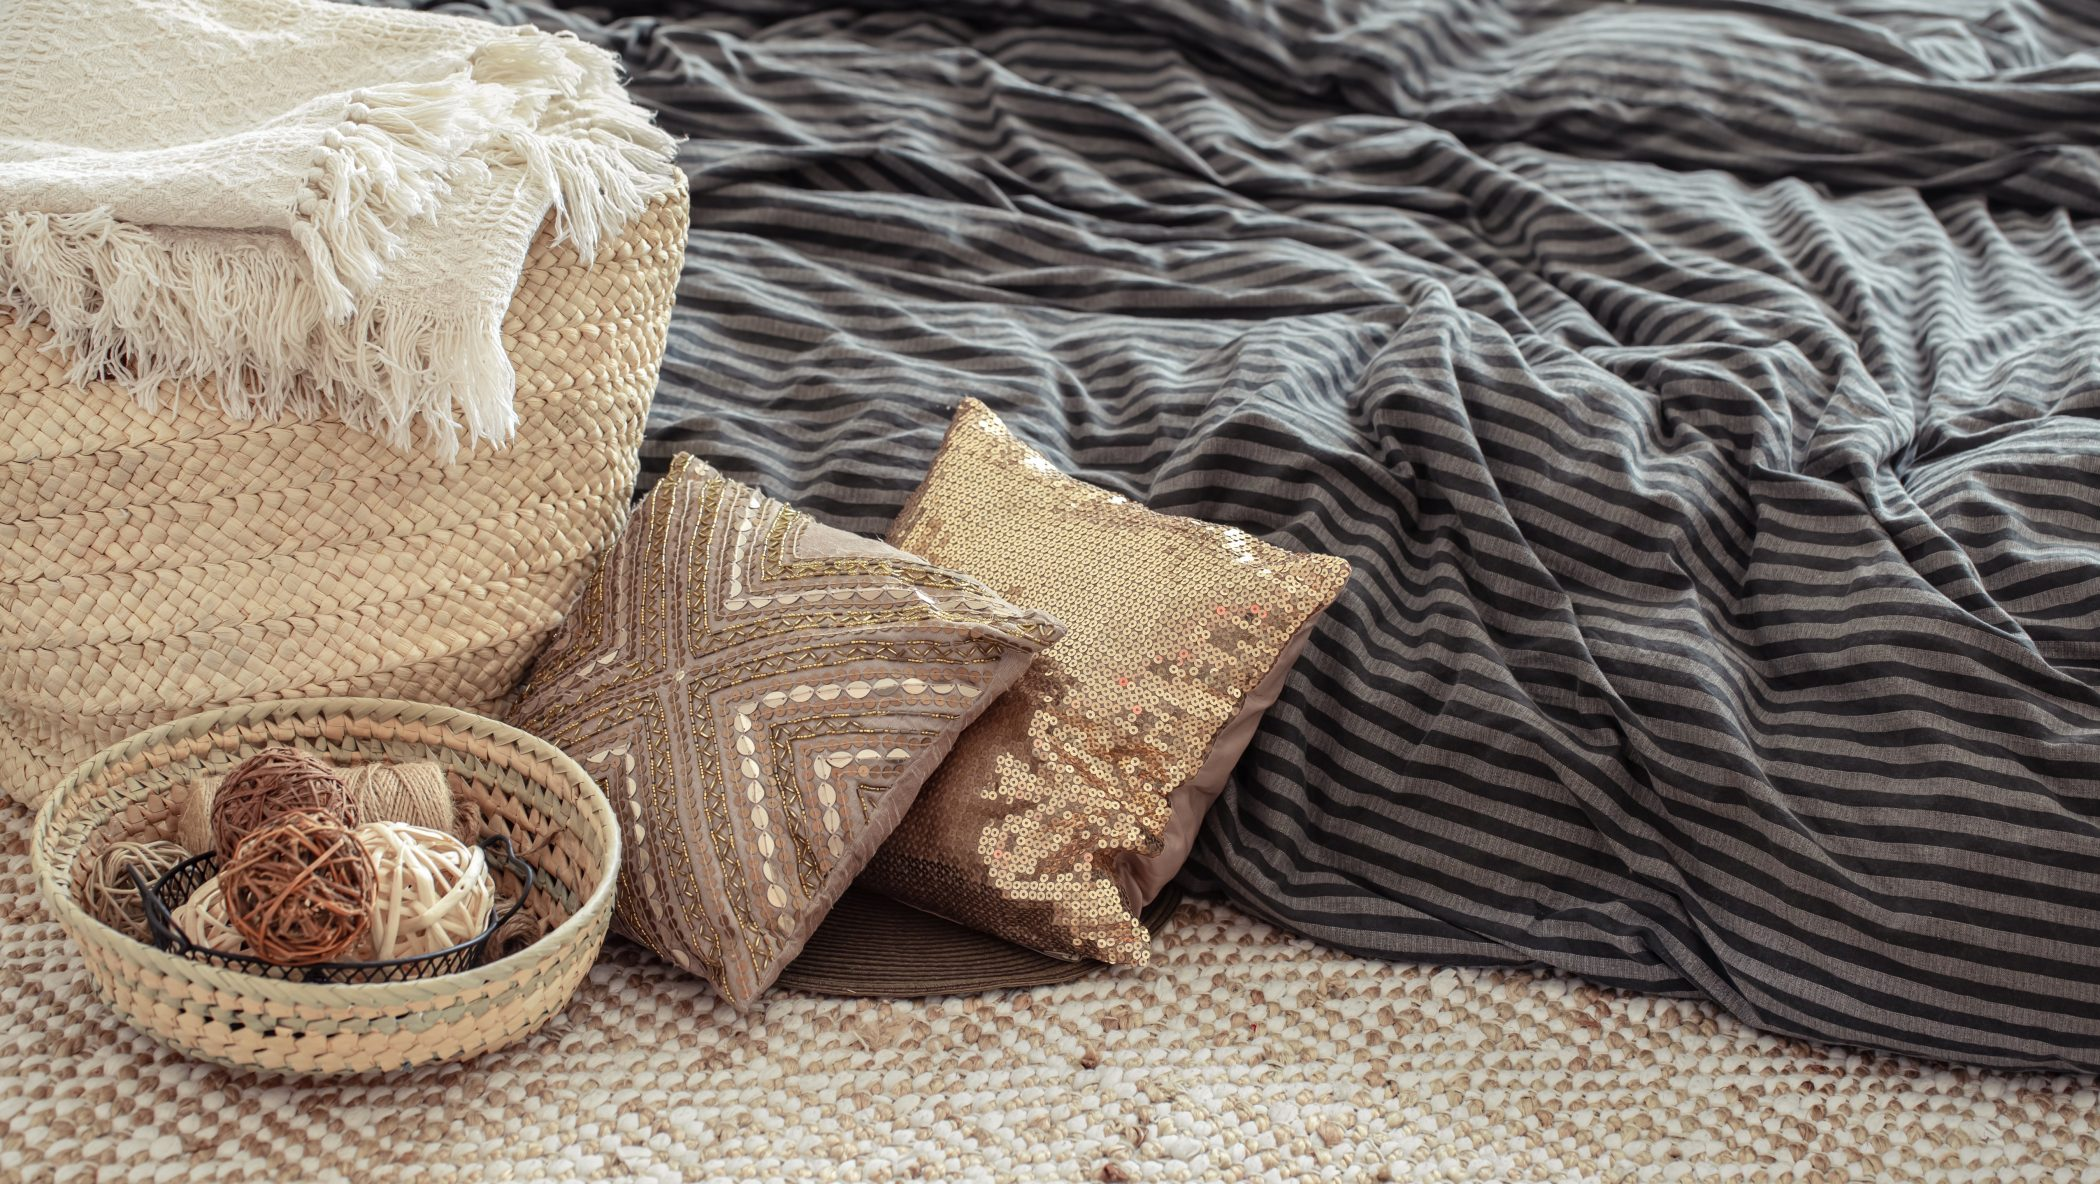 Decorative items in a cozy home interior. Wicker straw large bag, and decorative elements. Concepts of style and comfort.